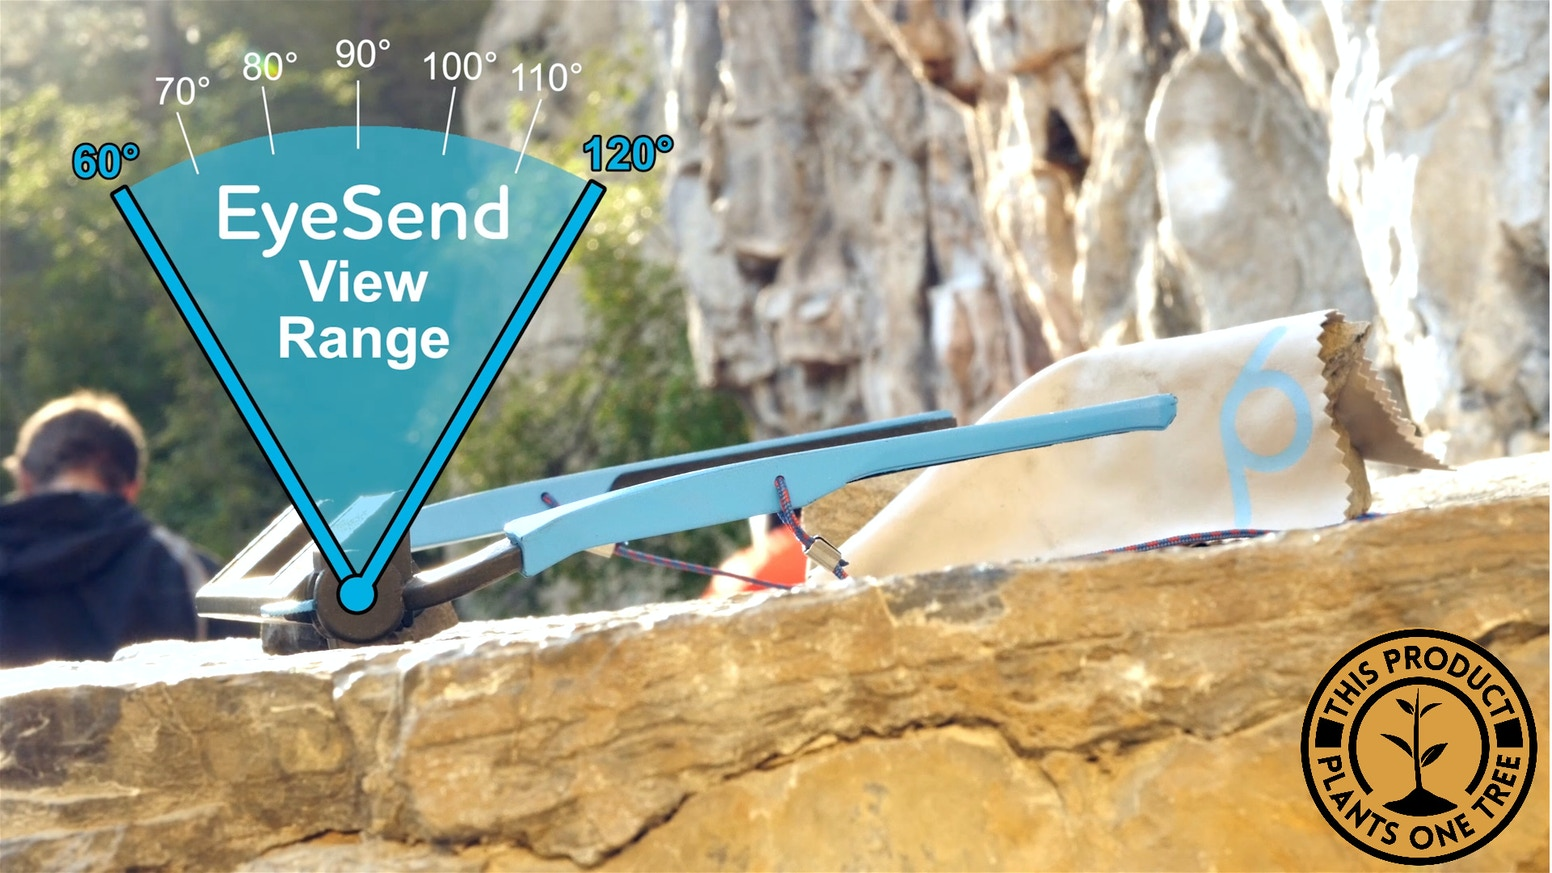 Belay without bending your neck! This product is now in production and you can buy the EyeSend Adjustable-View Belay Glasseshttps://pitchsix.com/products/belay-glasses-eyesend-adjustable-view